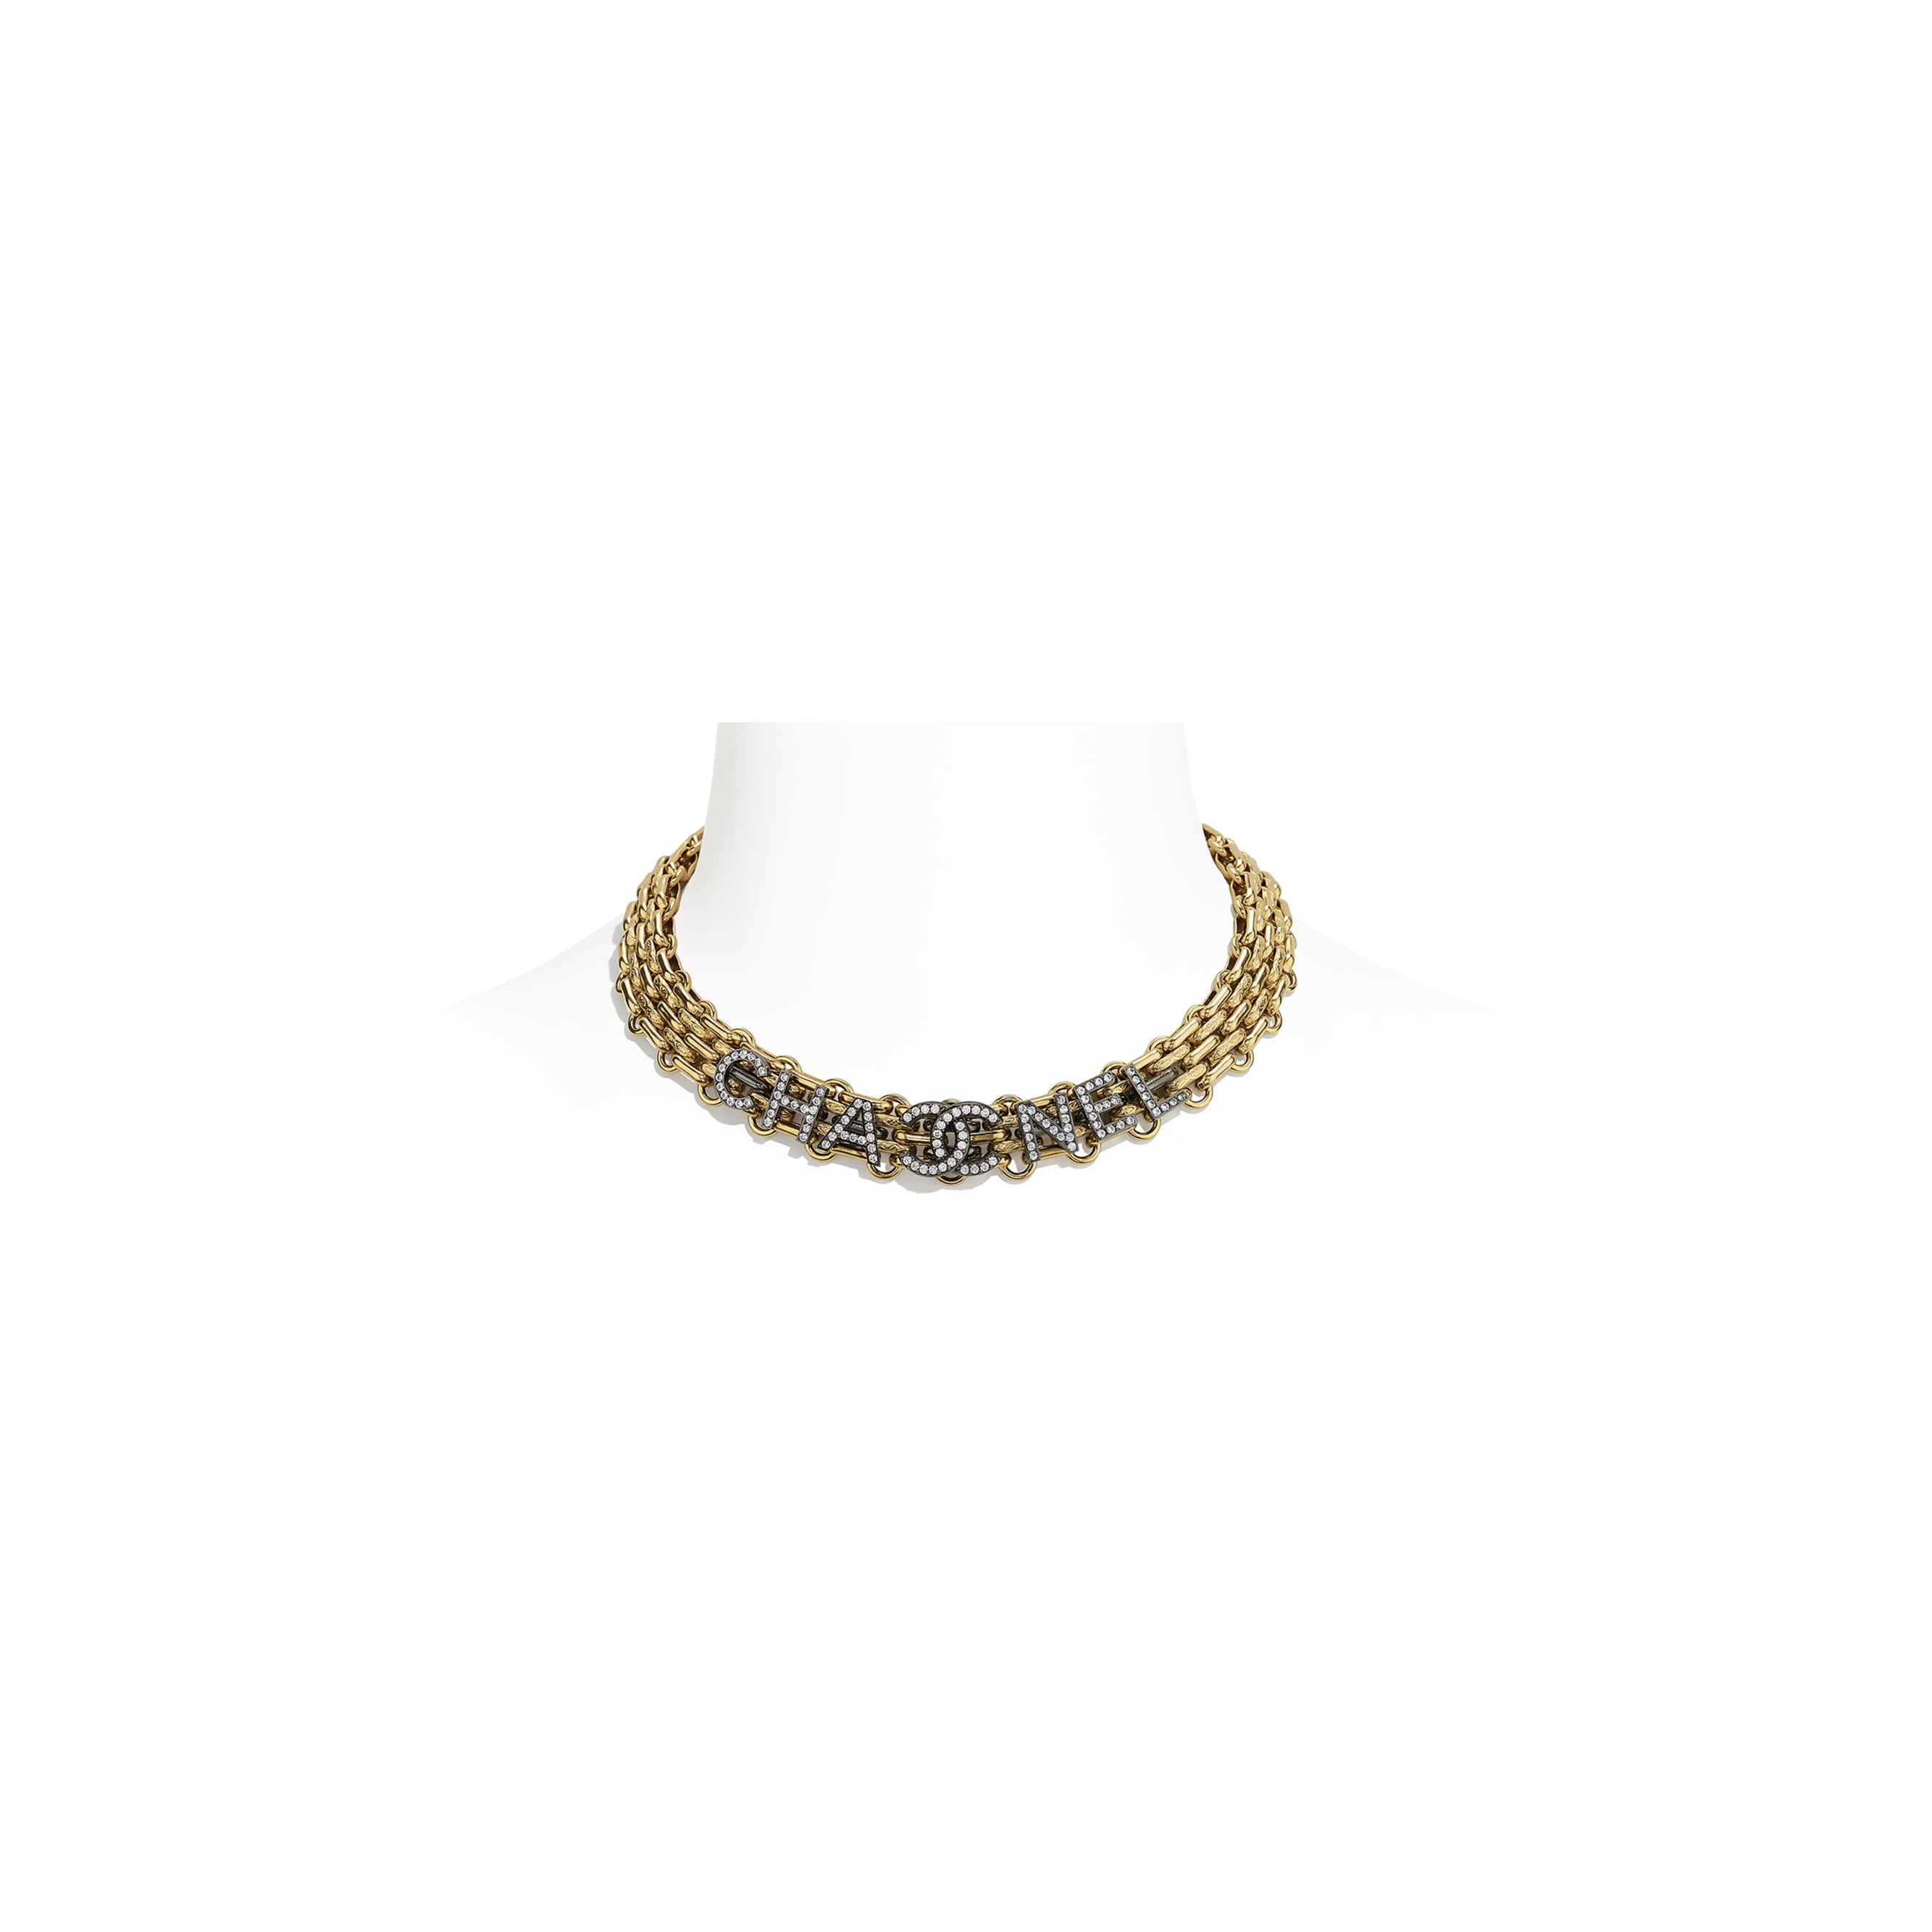 Necklace - Gold, Ruthenium & Crystal - Metal & Diamantés - CHANEL - Default view - see standard sized version